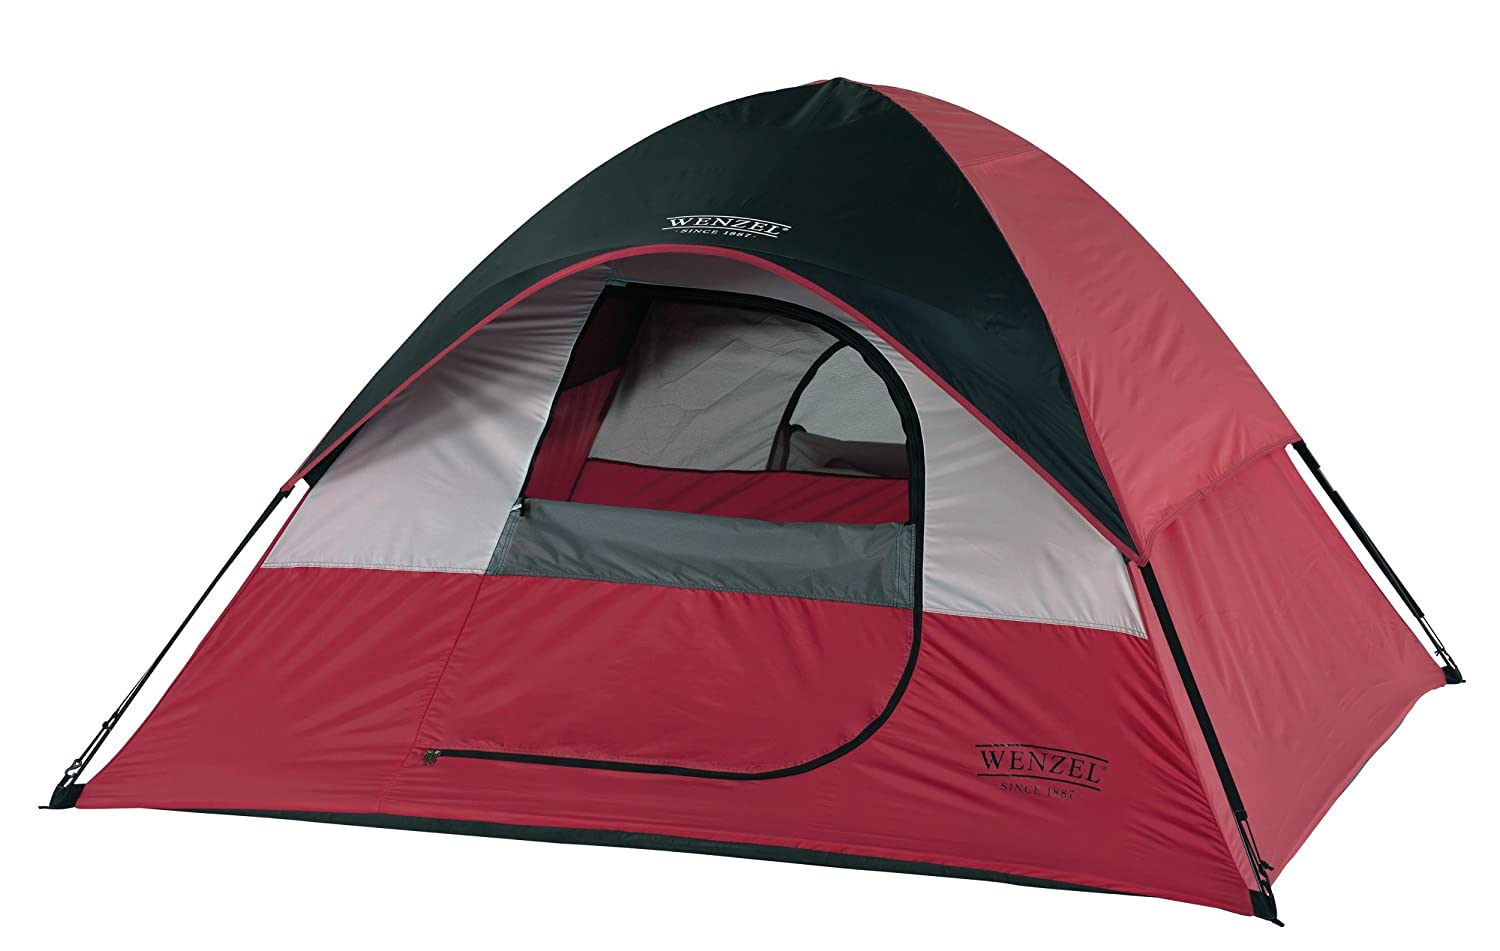 Amazon.com  Wenzel Twin Peaks Sport Dome Tent Red/Black  Family Tents  Sports u0026 Outdoors  sc 1 st  Amazon.com & Amazon.com : Wenzel Twin Peaks Sport Dome Tent Red/Black : Family ...